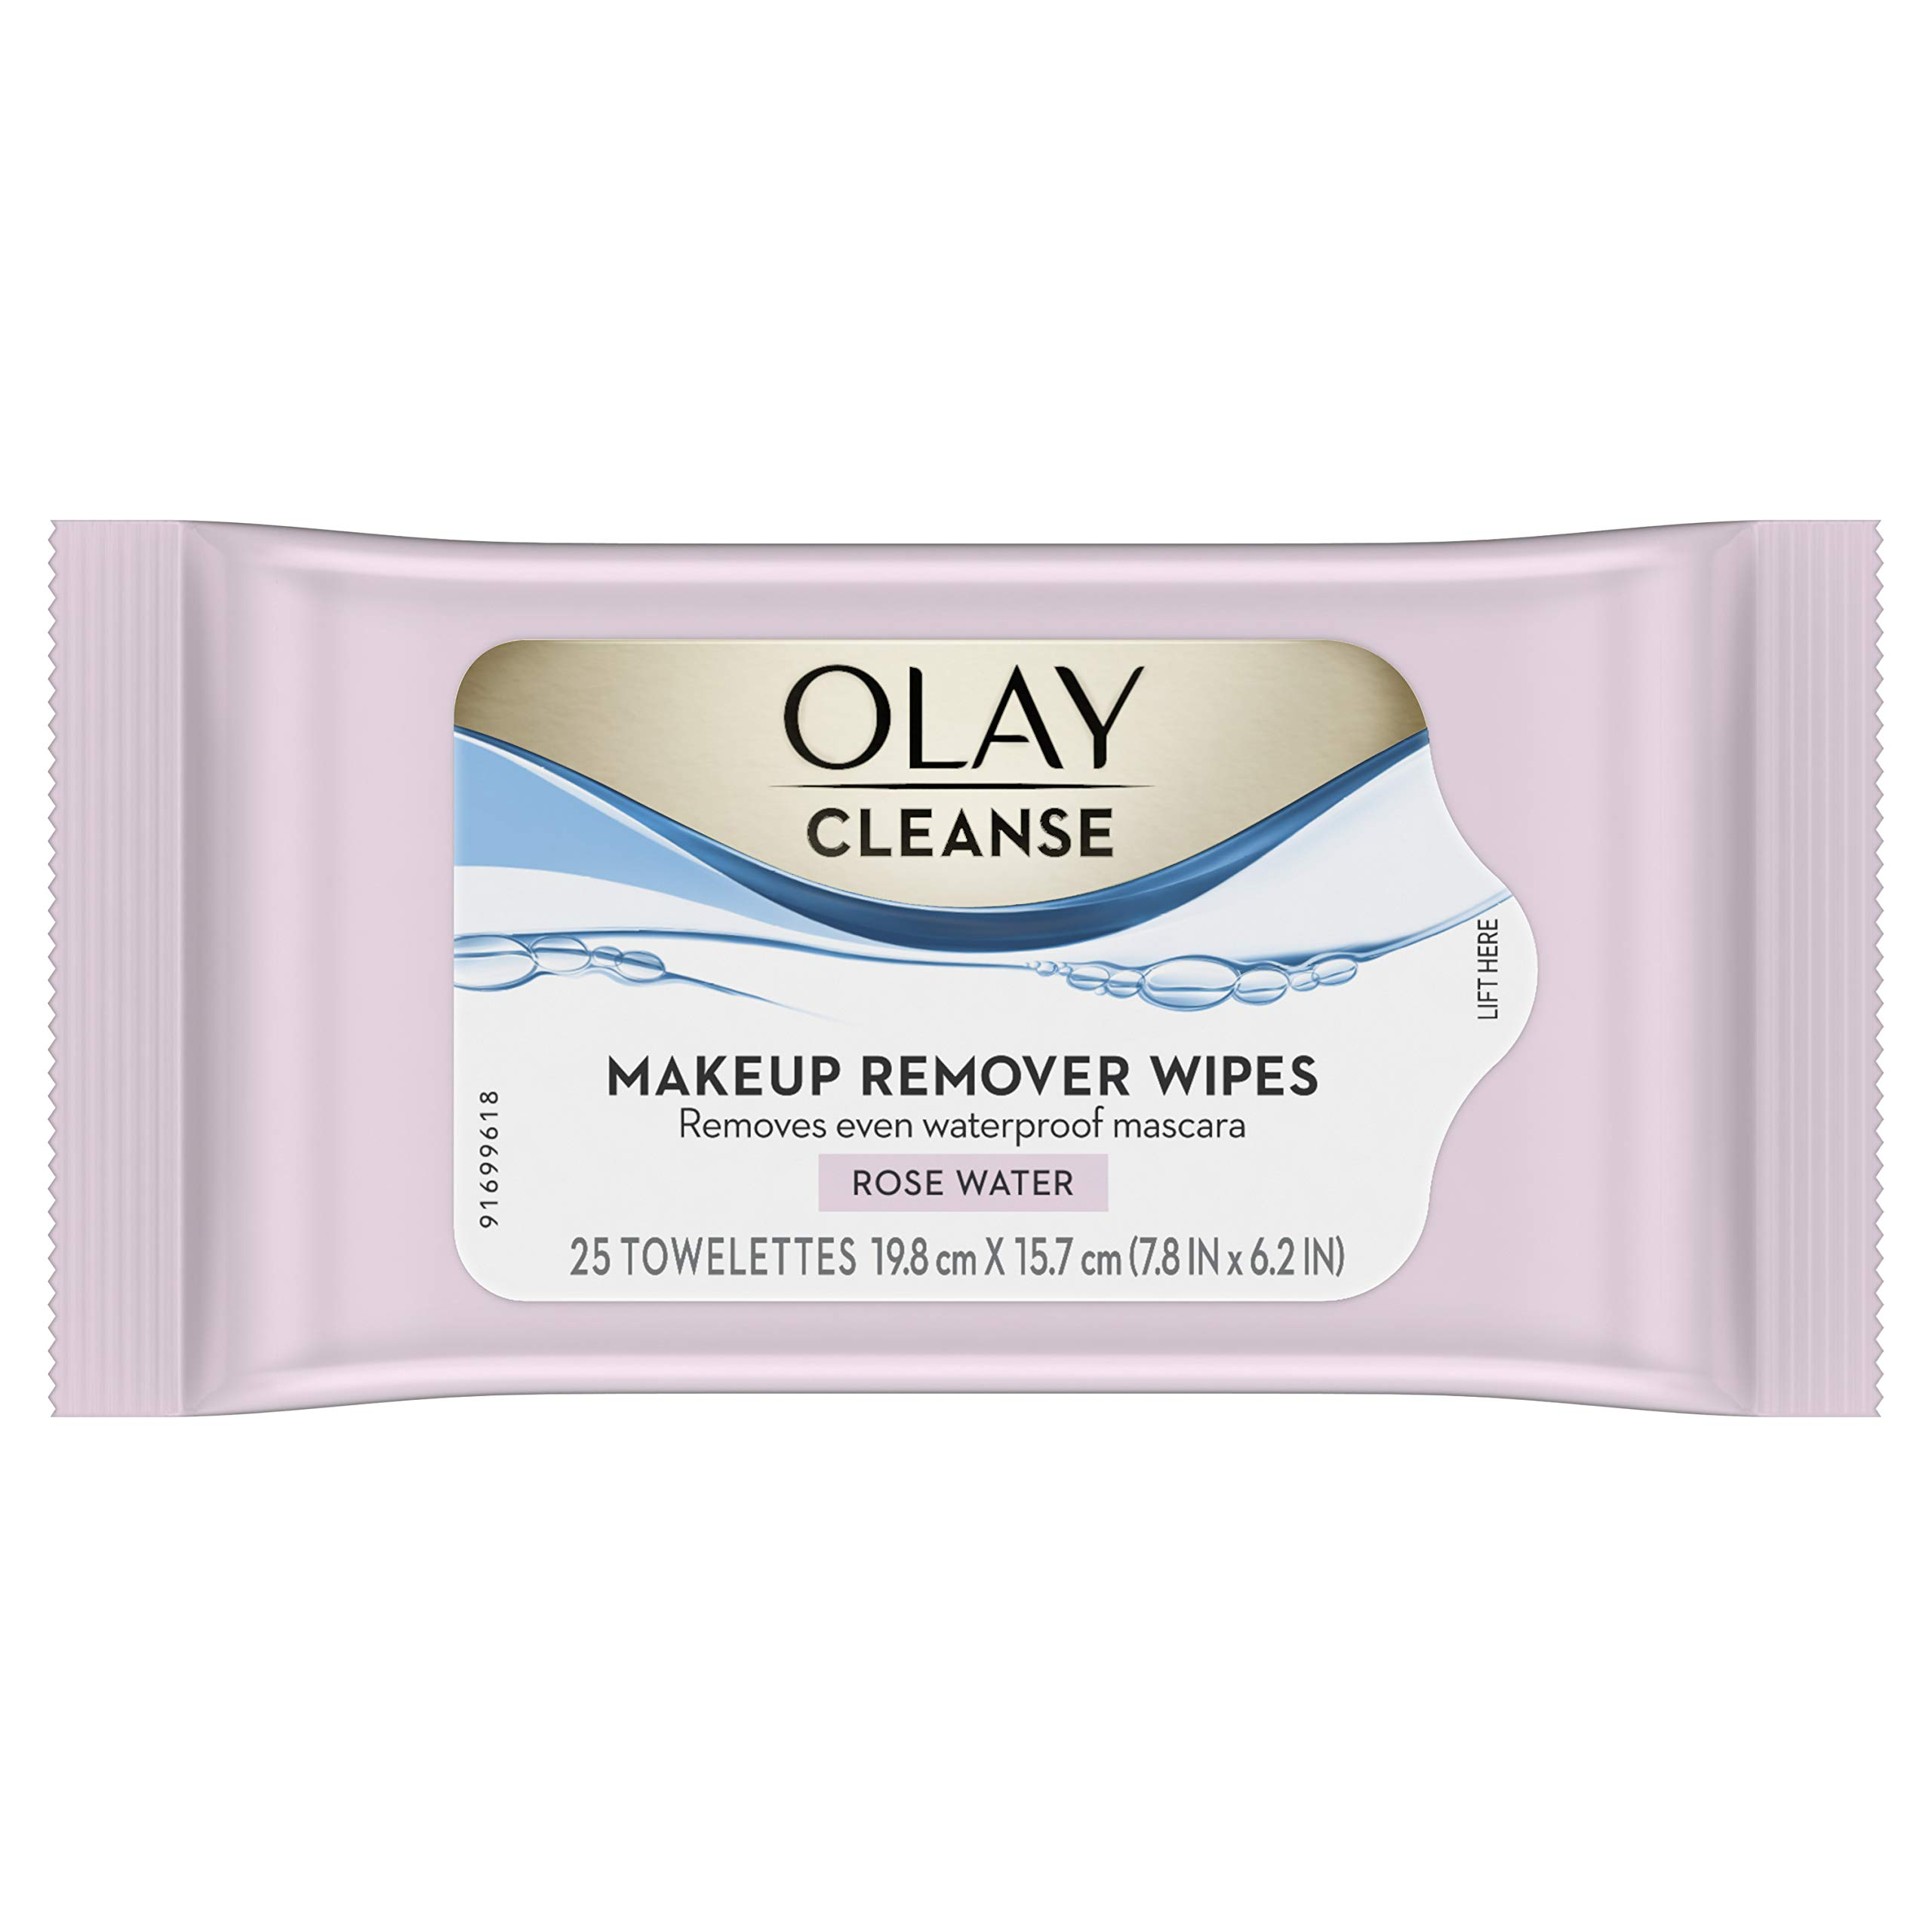 Olay Cleanse Makeup Remover Wipes Rose Water, 25 count